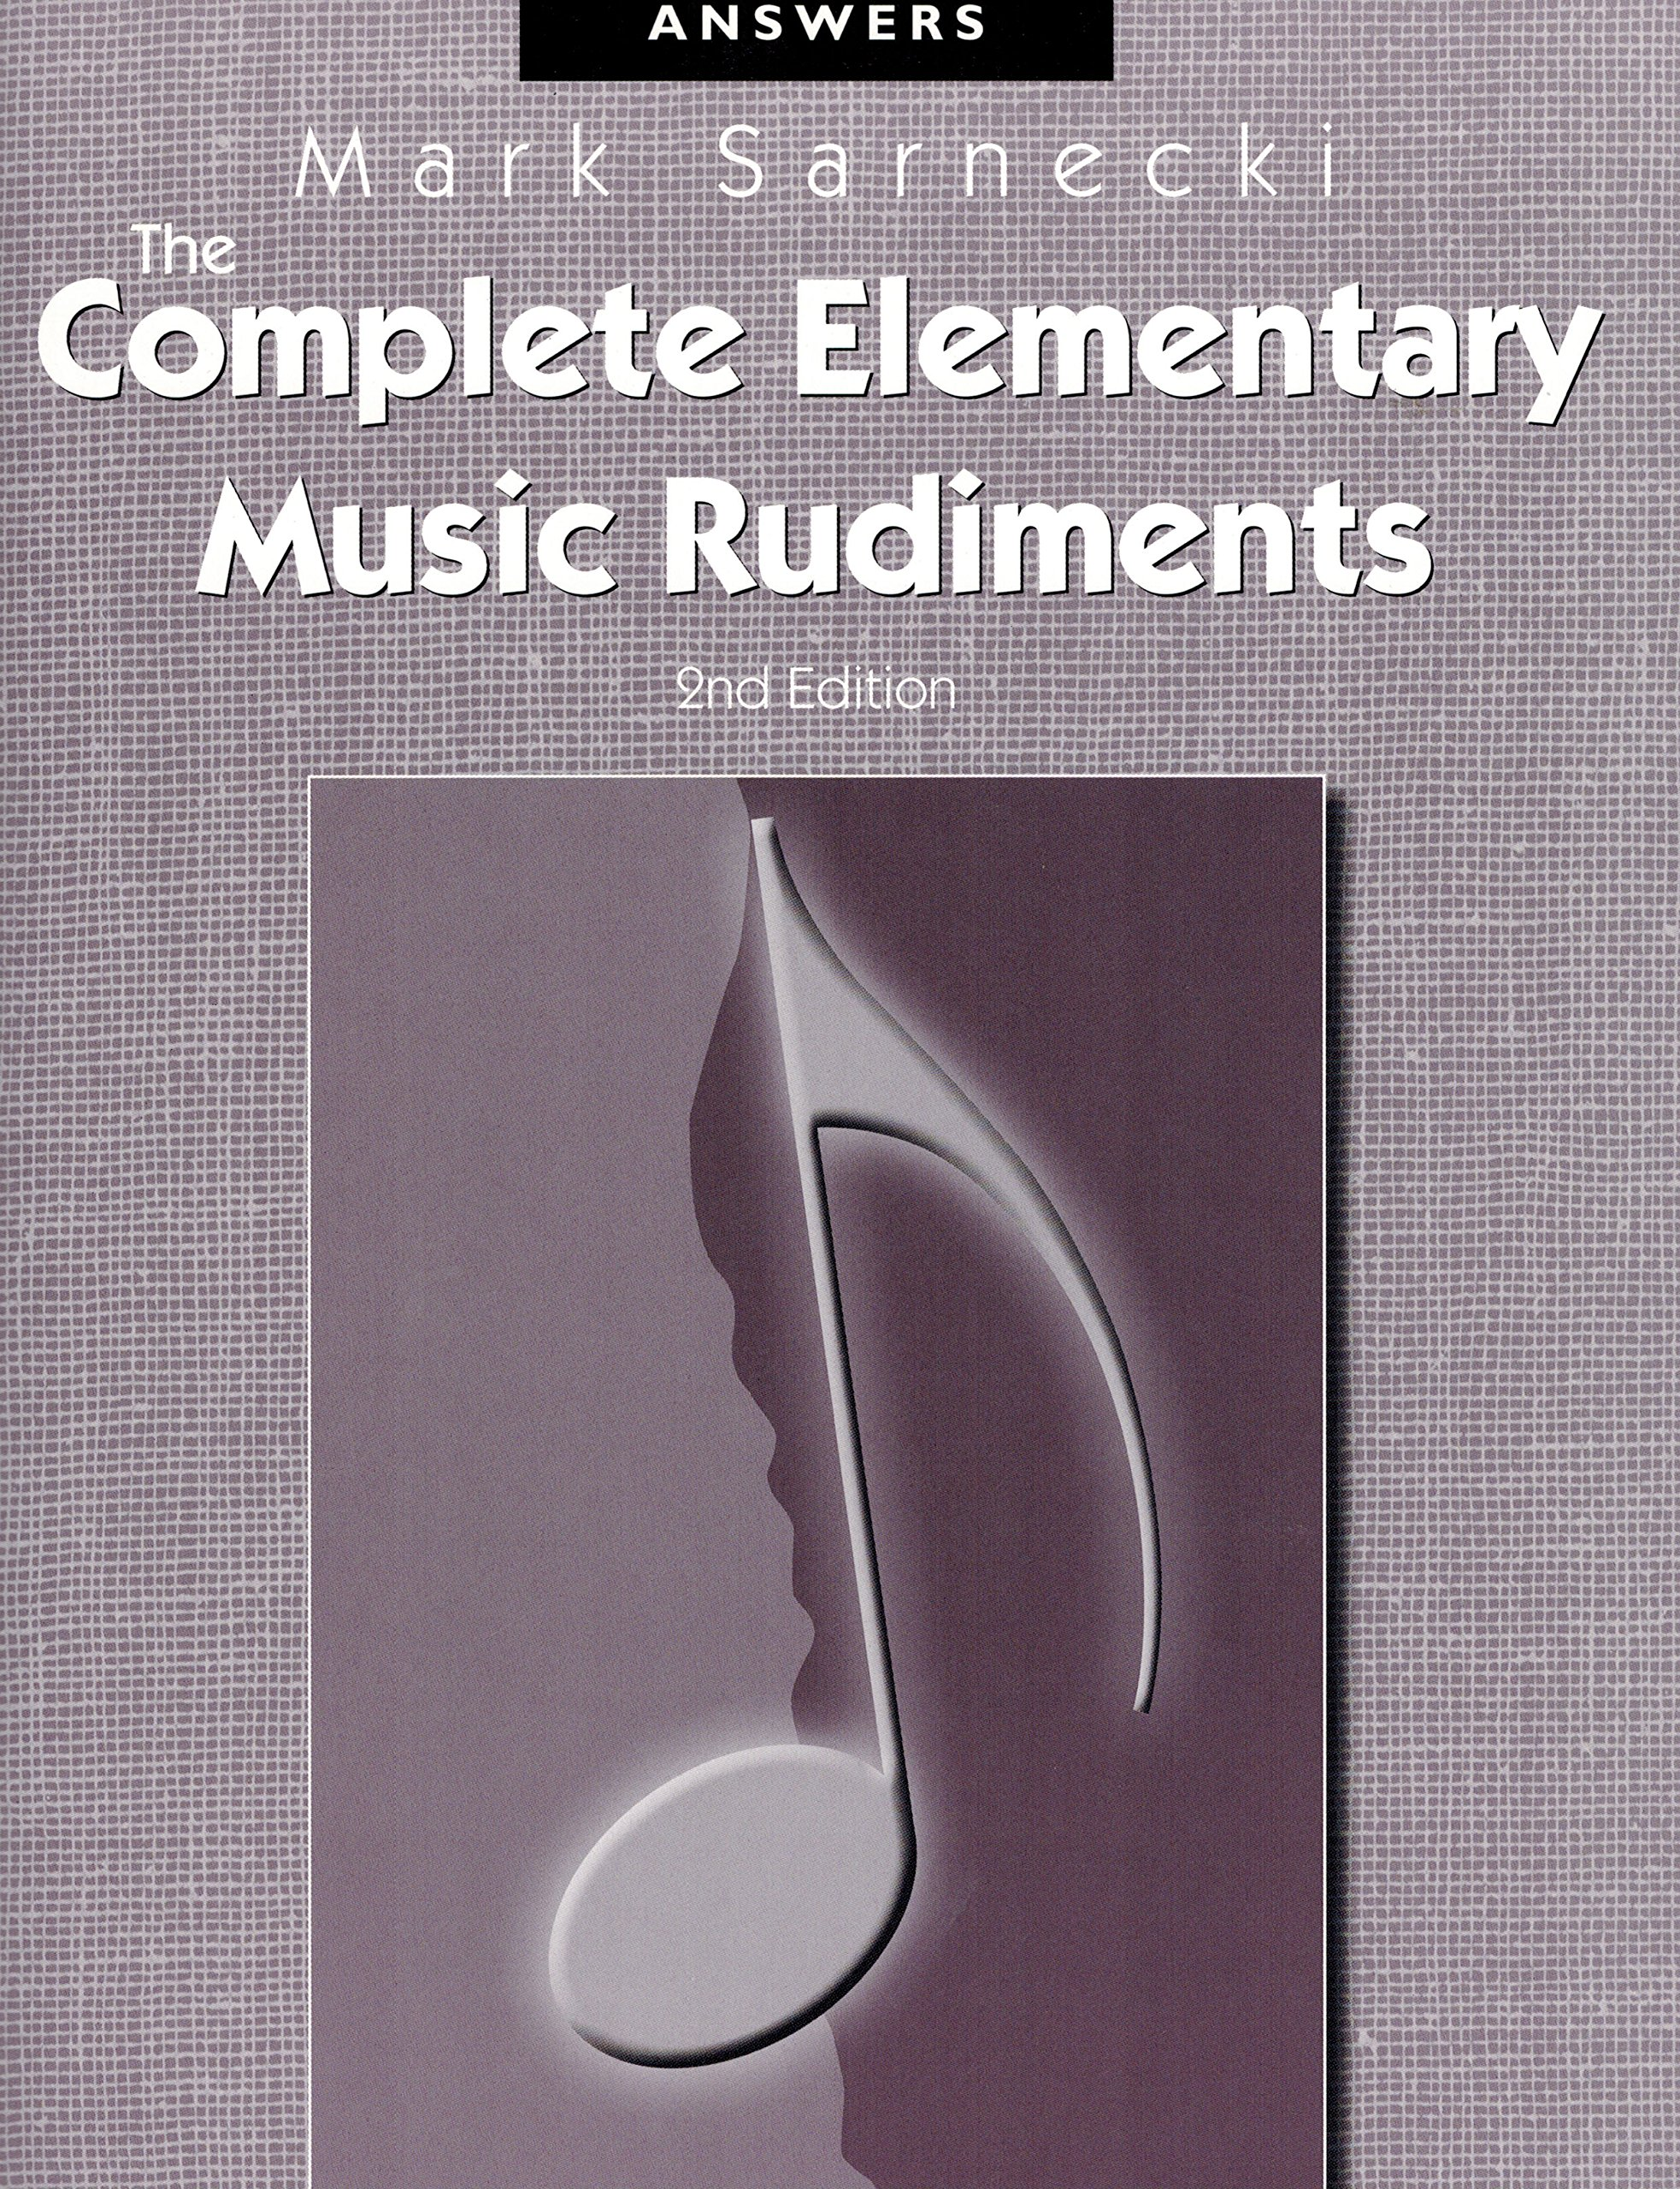 Tscra the complete elementary music rudiments 2nd edition answer tscra the complete elementary music rudiments 2nd edition answer book mark sarnecki frederick harris 9781554402786 amazon books fandeluxe Gallery